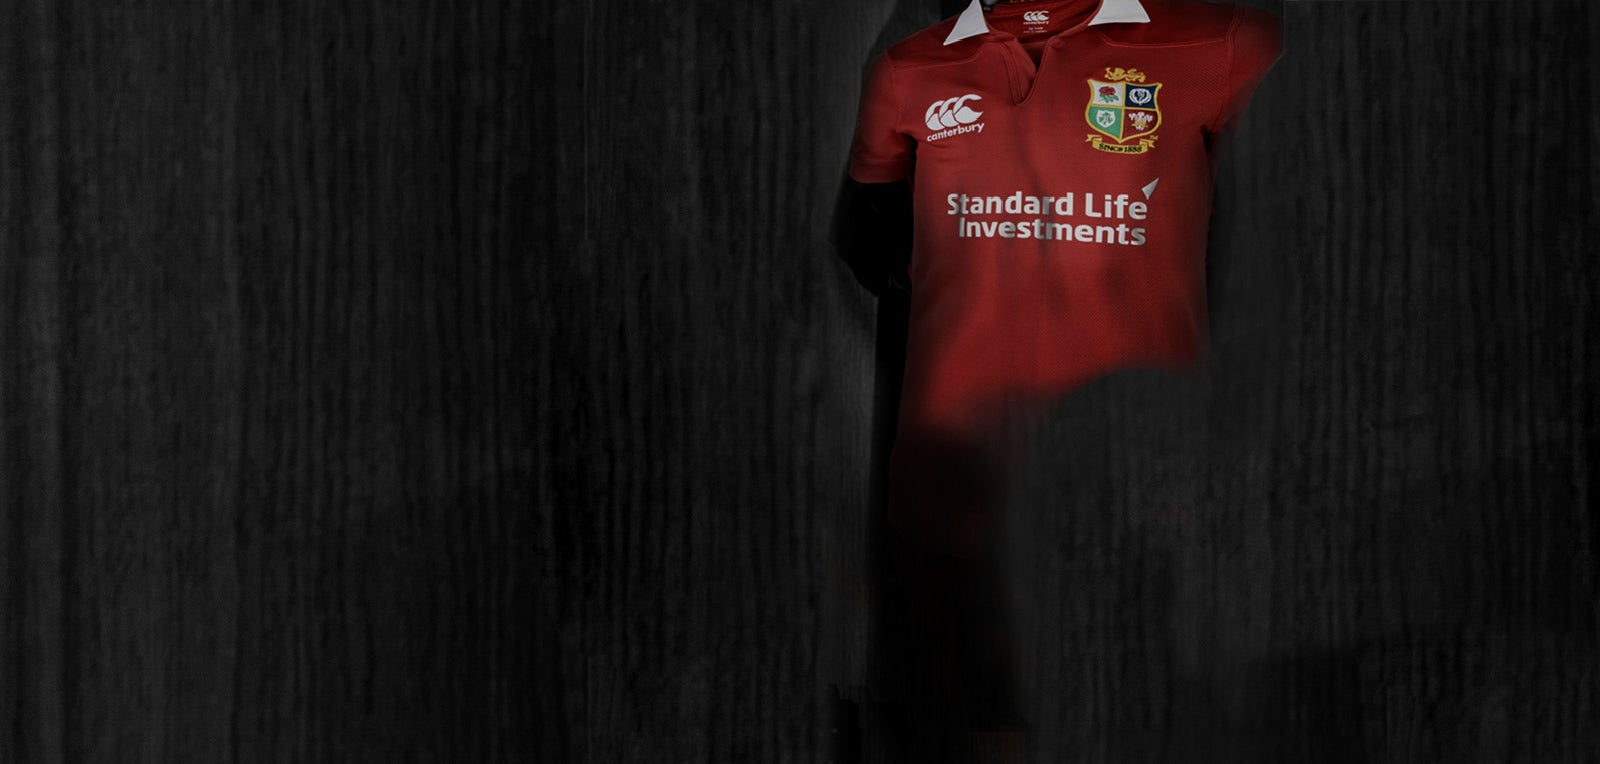 Black background with British Lions Rugby Shirt in top right corner